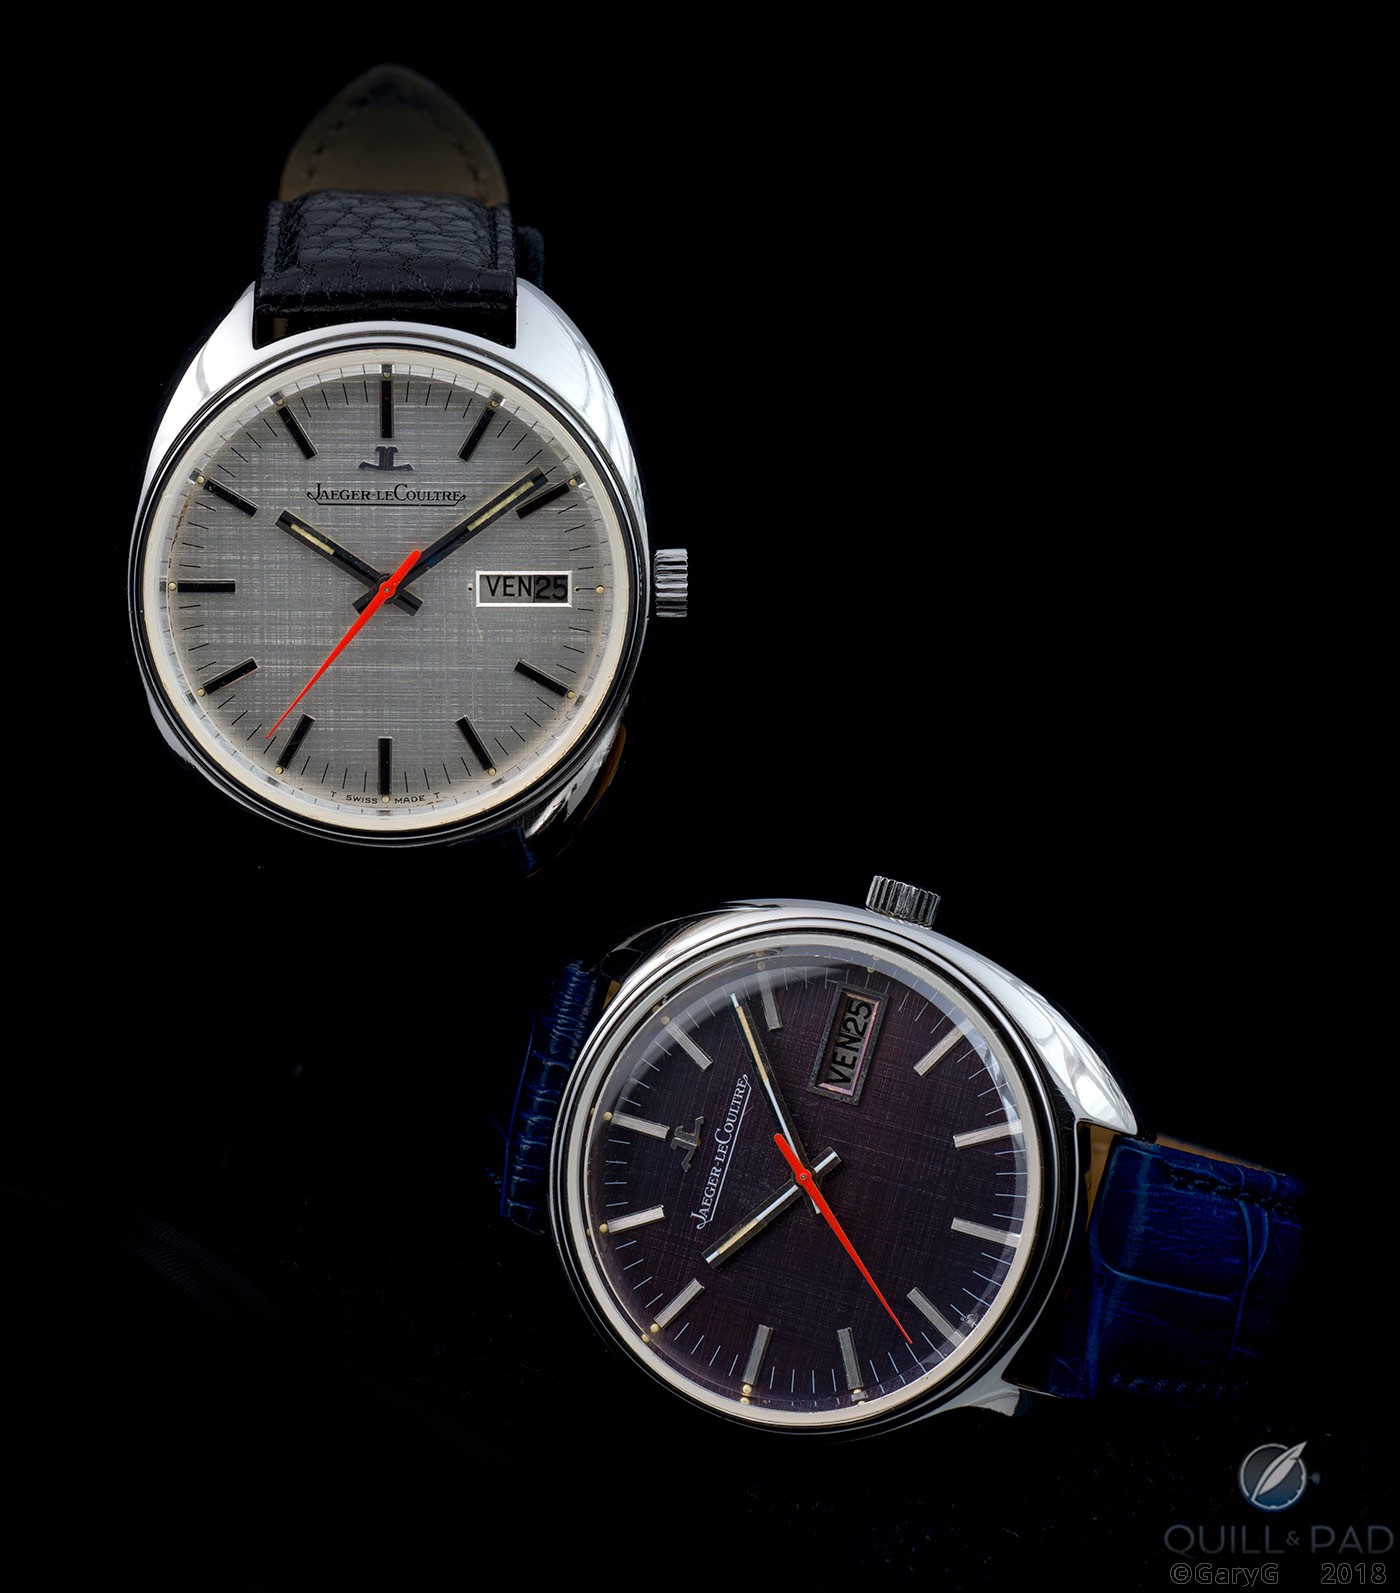 Two prototype Caliber 906 watches from Jaeger-LeCoultre